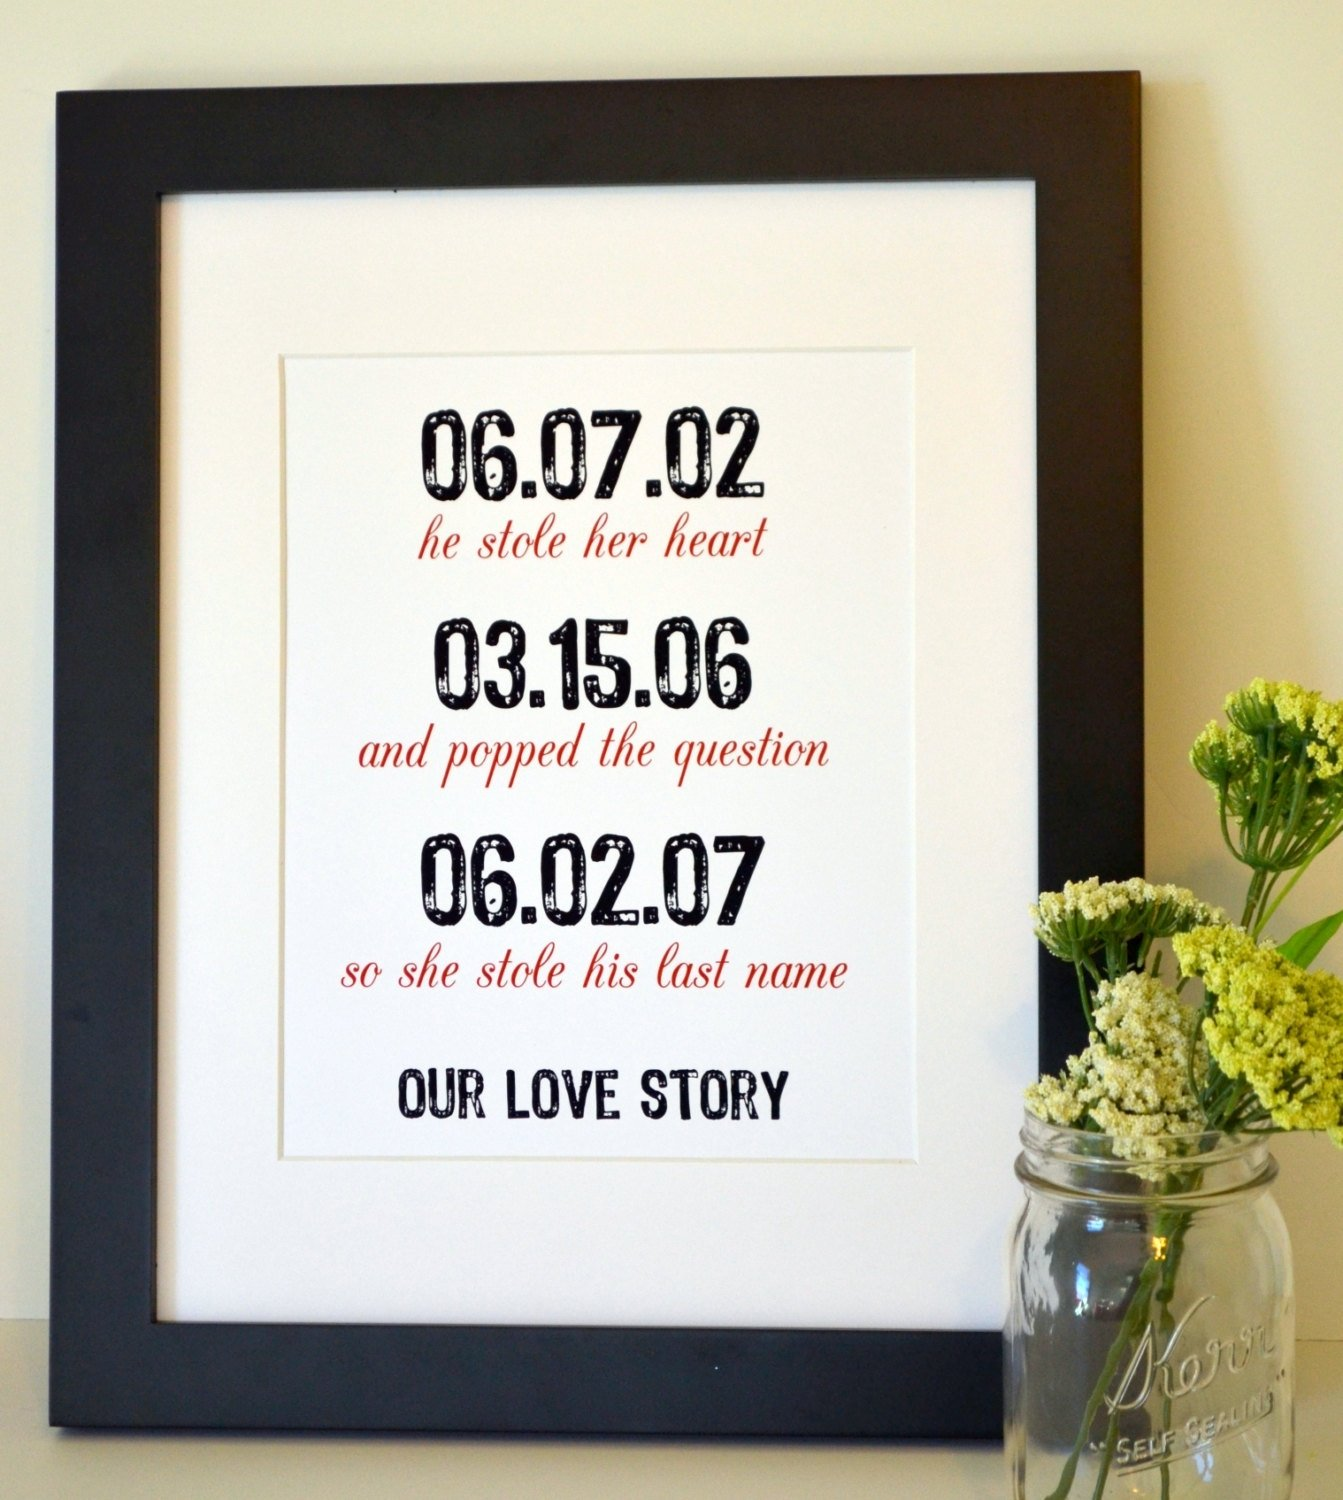 10 Ideal Ideas For A Love Story wedding ideas to share your story arabia weddings